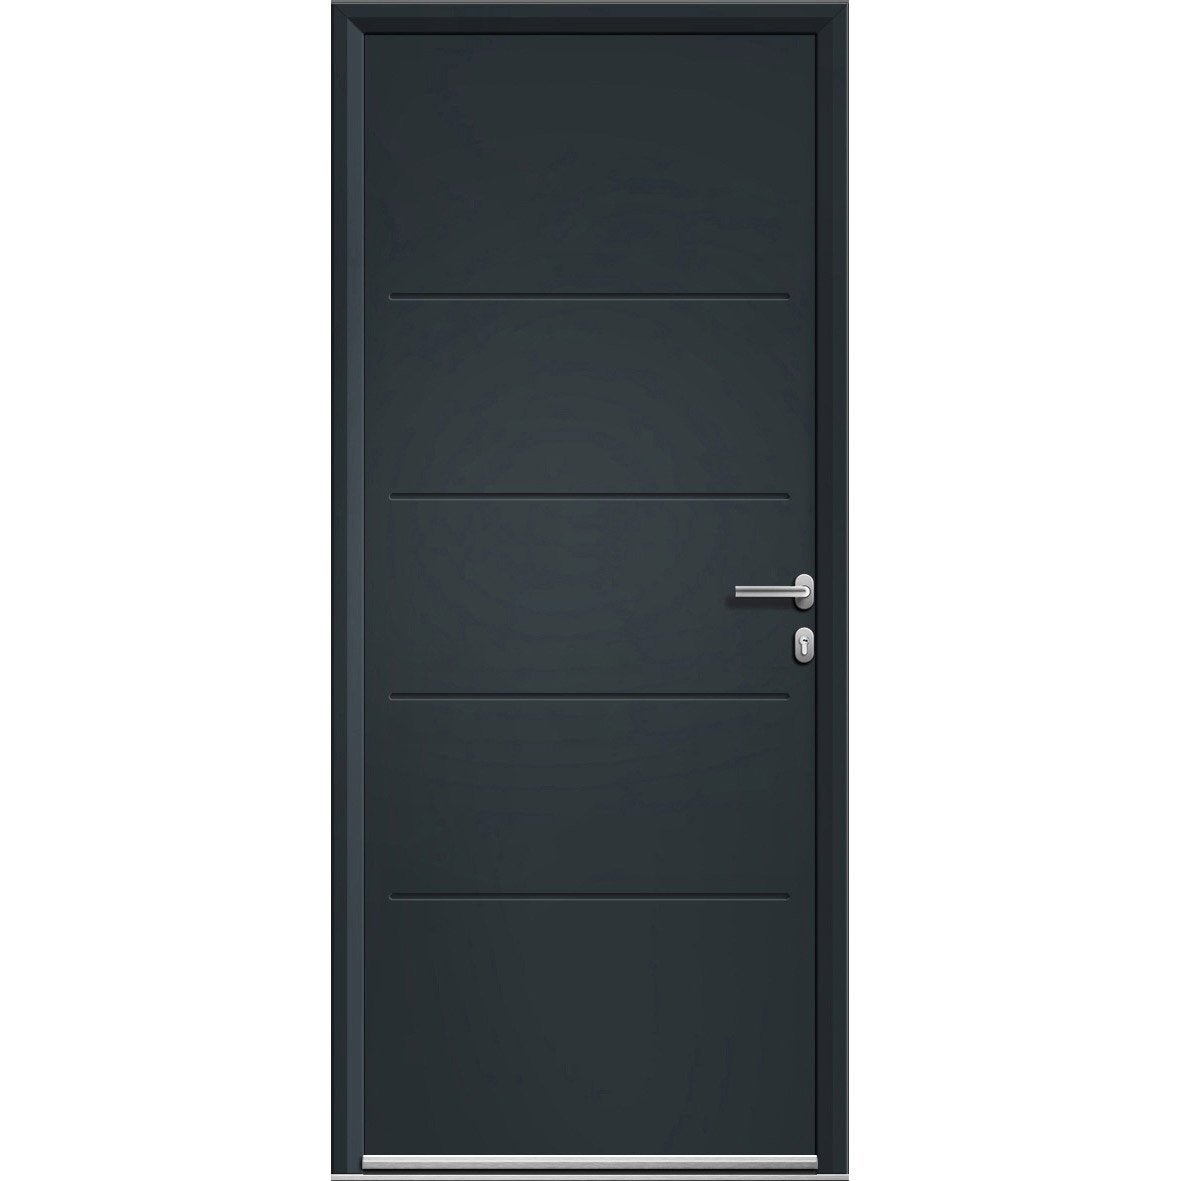 porte acoustique leroy merlin 28 images porte. Black Bedroom Furniture Sets. Home Design Ideas